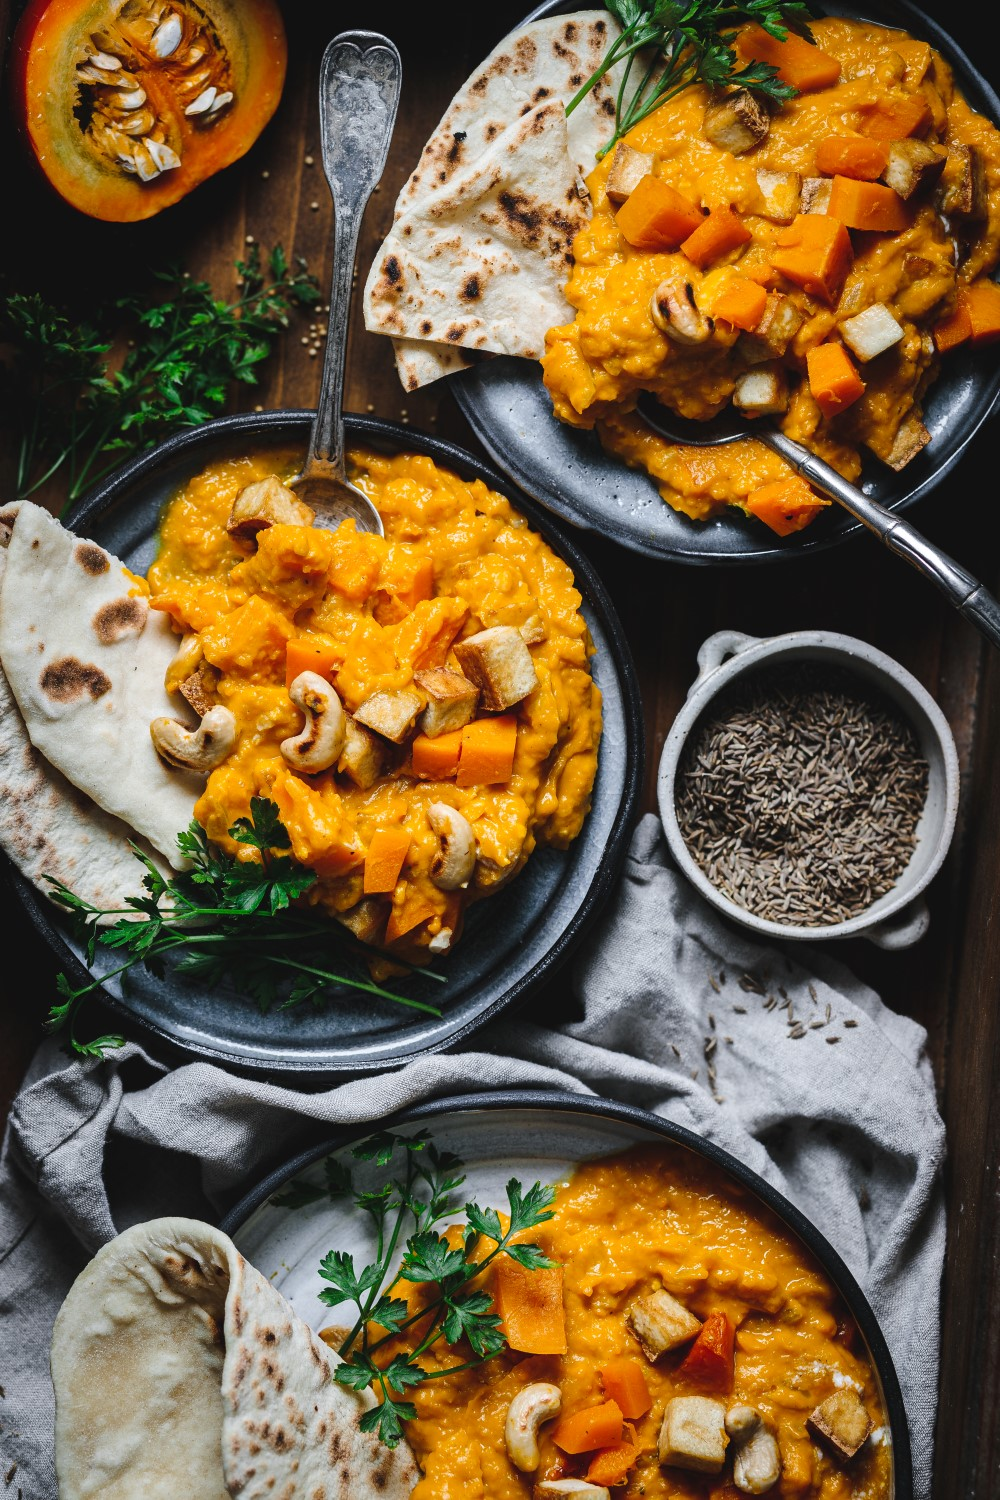 s vegan roasted pumpkin curry recipe is super comforting and is a proper late autumn dish. Nothing beats mixing pumpkin with coconut milk and fragrant spices.